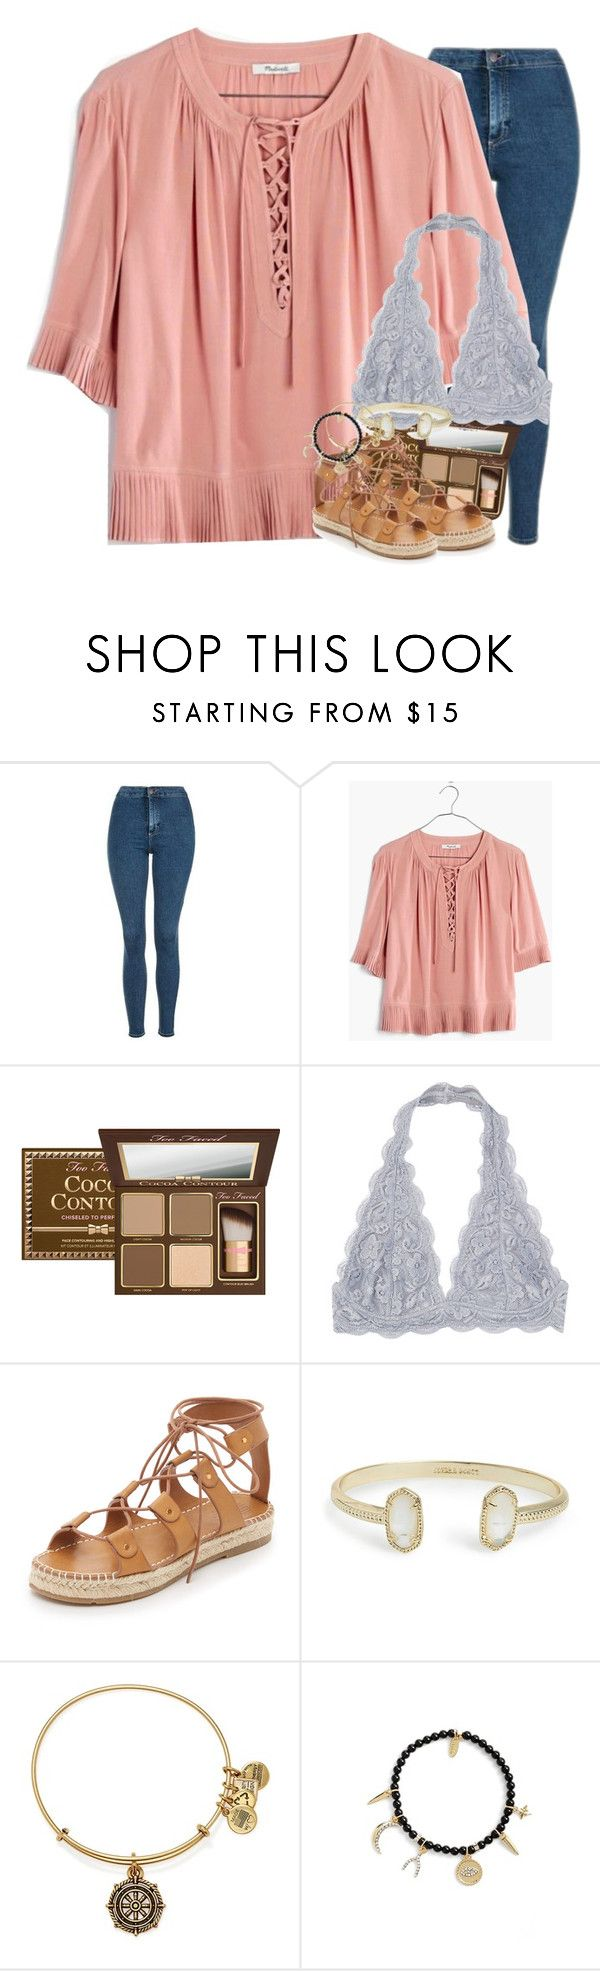 """there's plenty of fish in the sea that will treat you right."" by ellaswiftie13 on Polyvore featuring Topshop, Madewell, Too Faced Cosmetics, Charlotte Stone, Kendra Scott, Alex and Ani and Ettika"